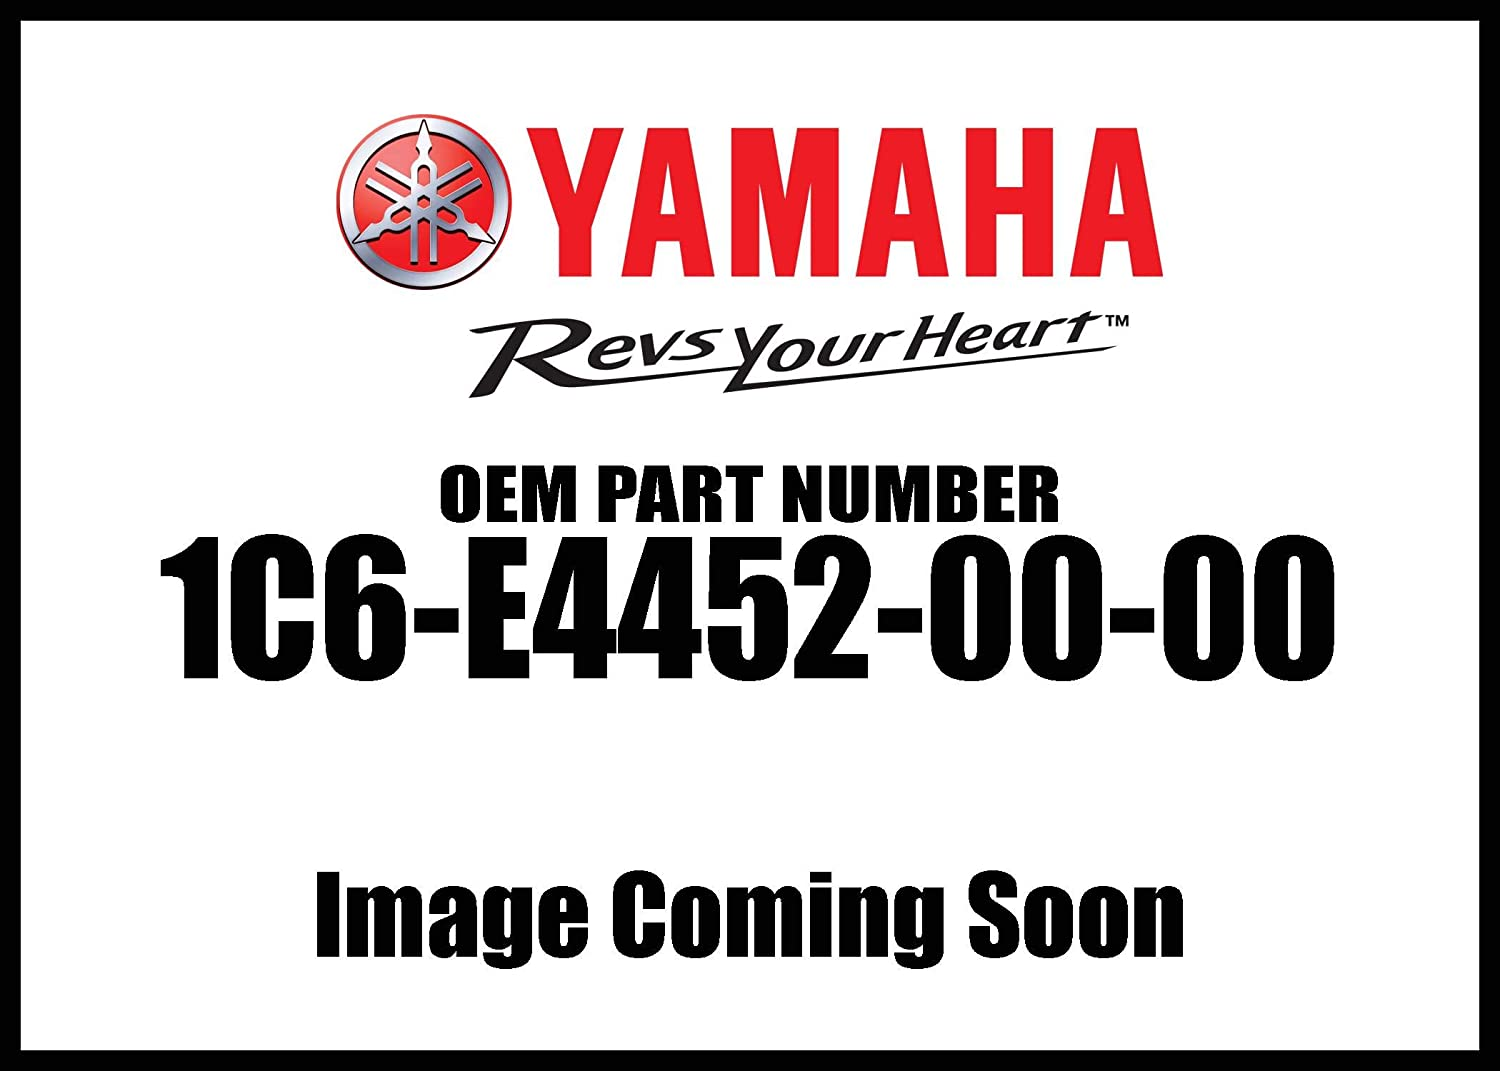 Yamaha 1C6-E4452-00-00 Seal; 1C6E44520000 Made by Yamaha